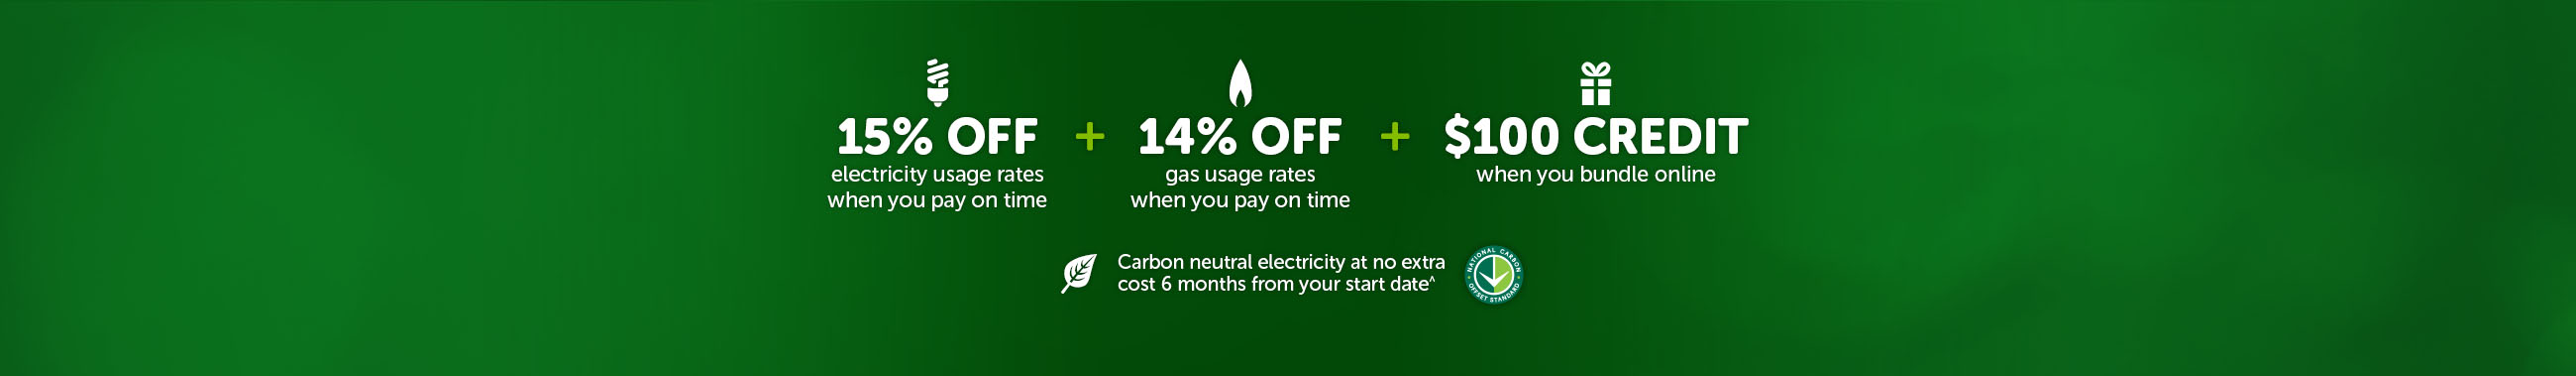 15% off electricity usage rates when you pay on time plus 14% off gas usage rates when you pay on time plus $100 credit when you bundle online and Carbon neutral electricity at no extra cost 6 months from your start date^